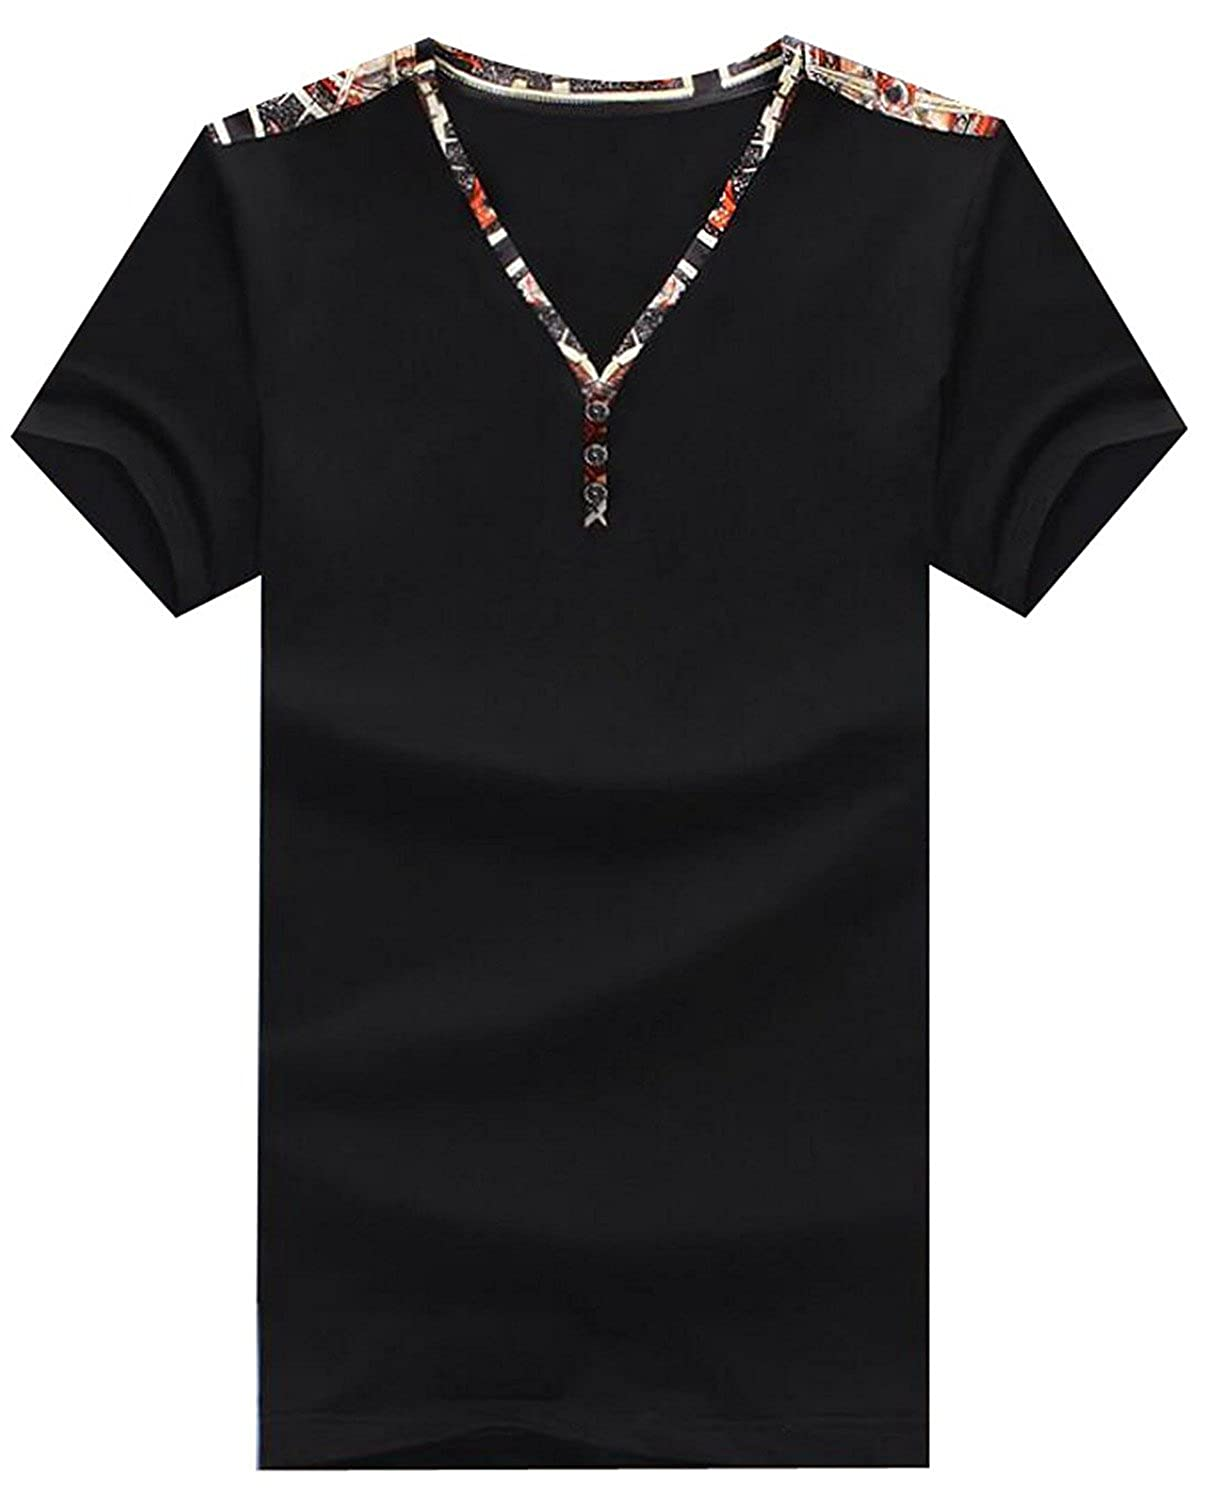 Brucest Mens Contrast Shoulder Printing Henley T-Shirt Tee product of good quallty